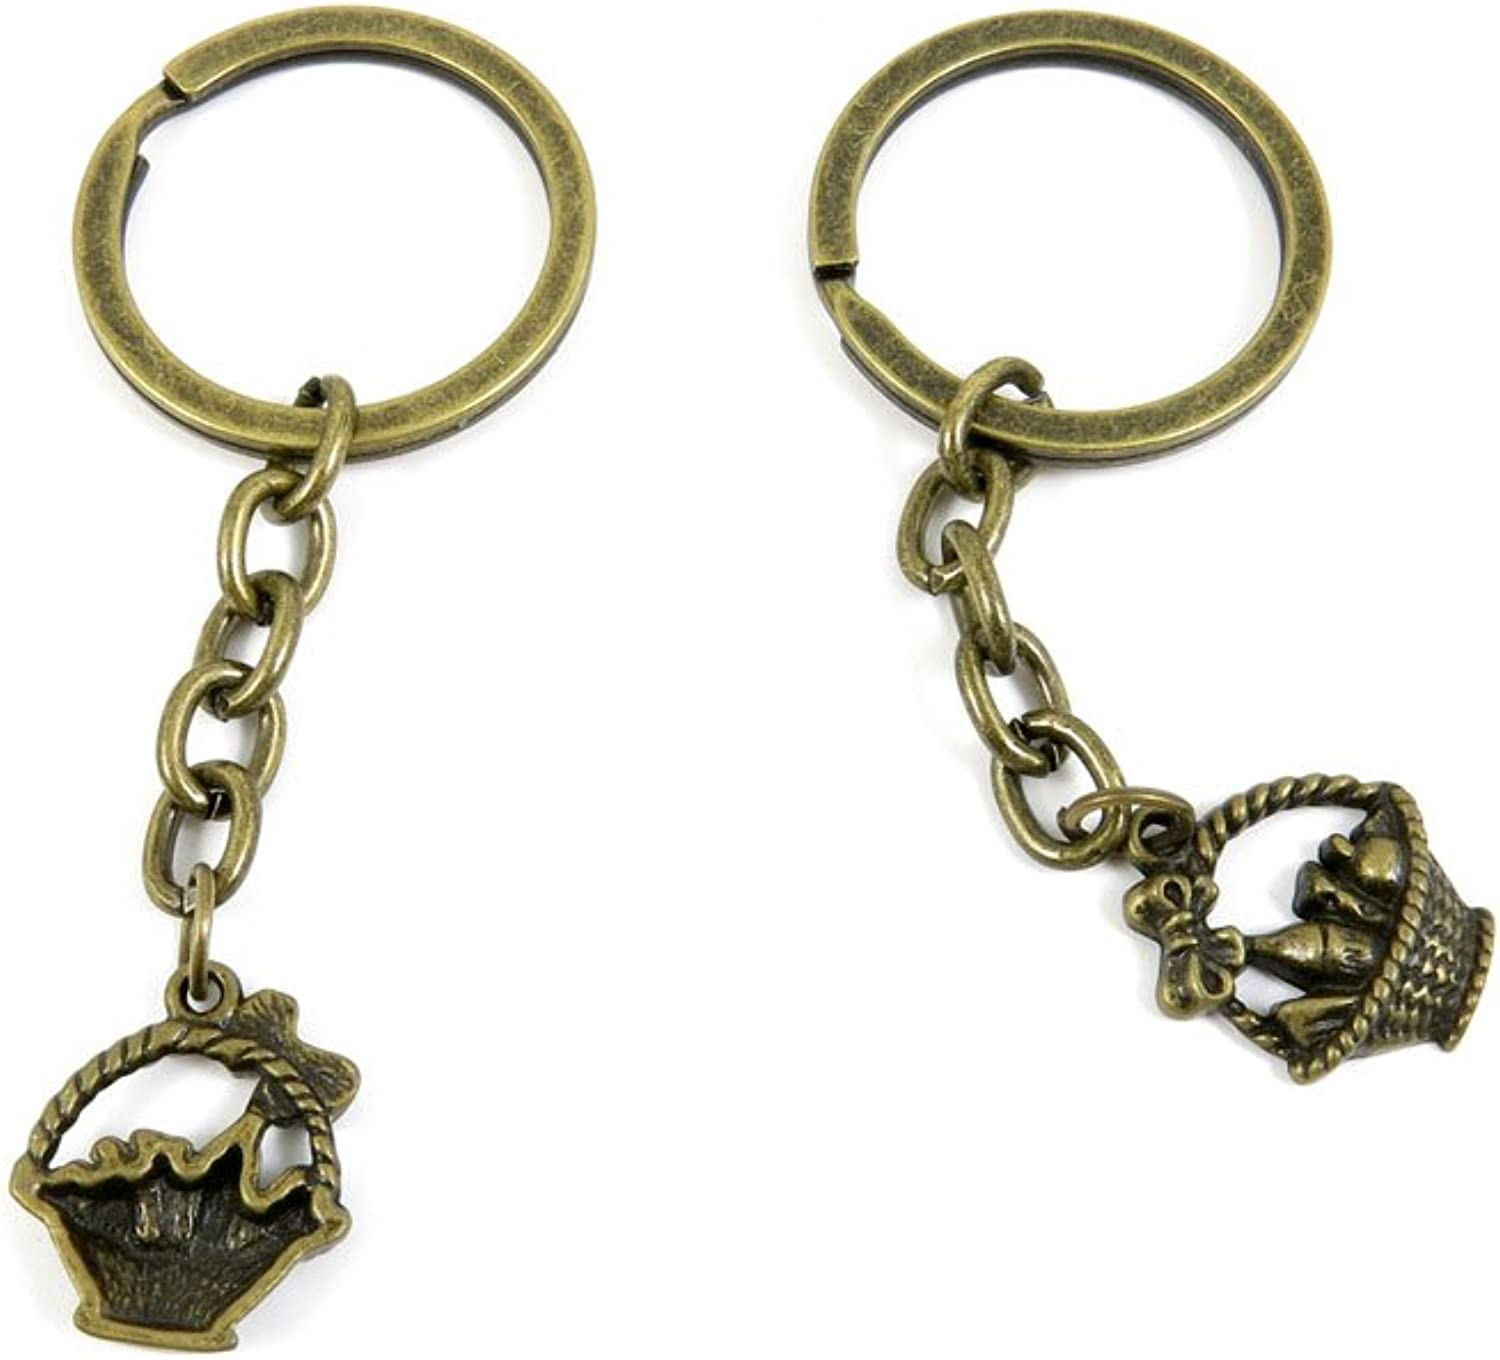 80 PCS Keyring Car Door Key Ring Tag Chain Keychain Wholesale Suppliers Charms Handmade R5SI3 Vegetable Basket